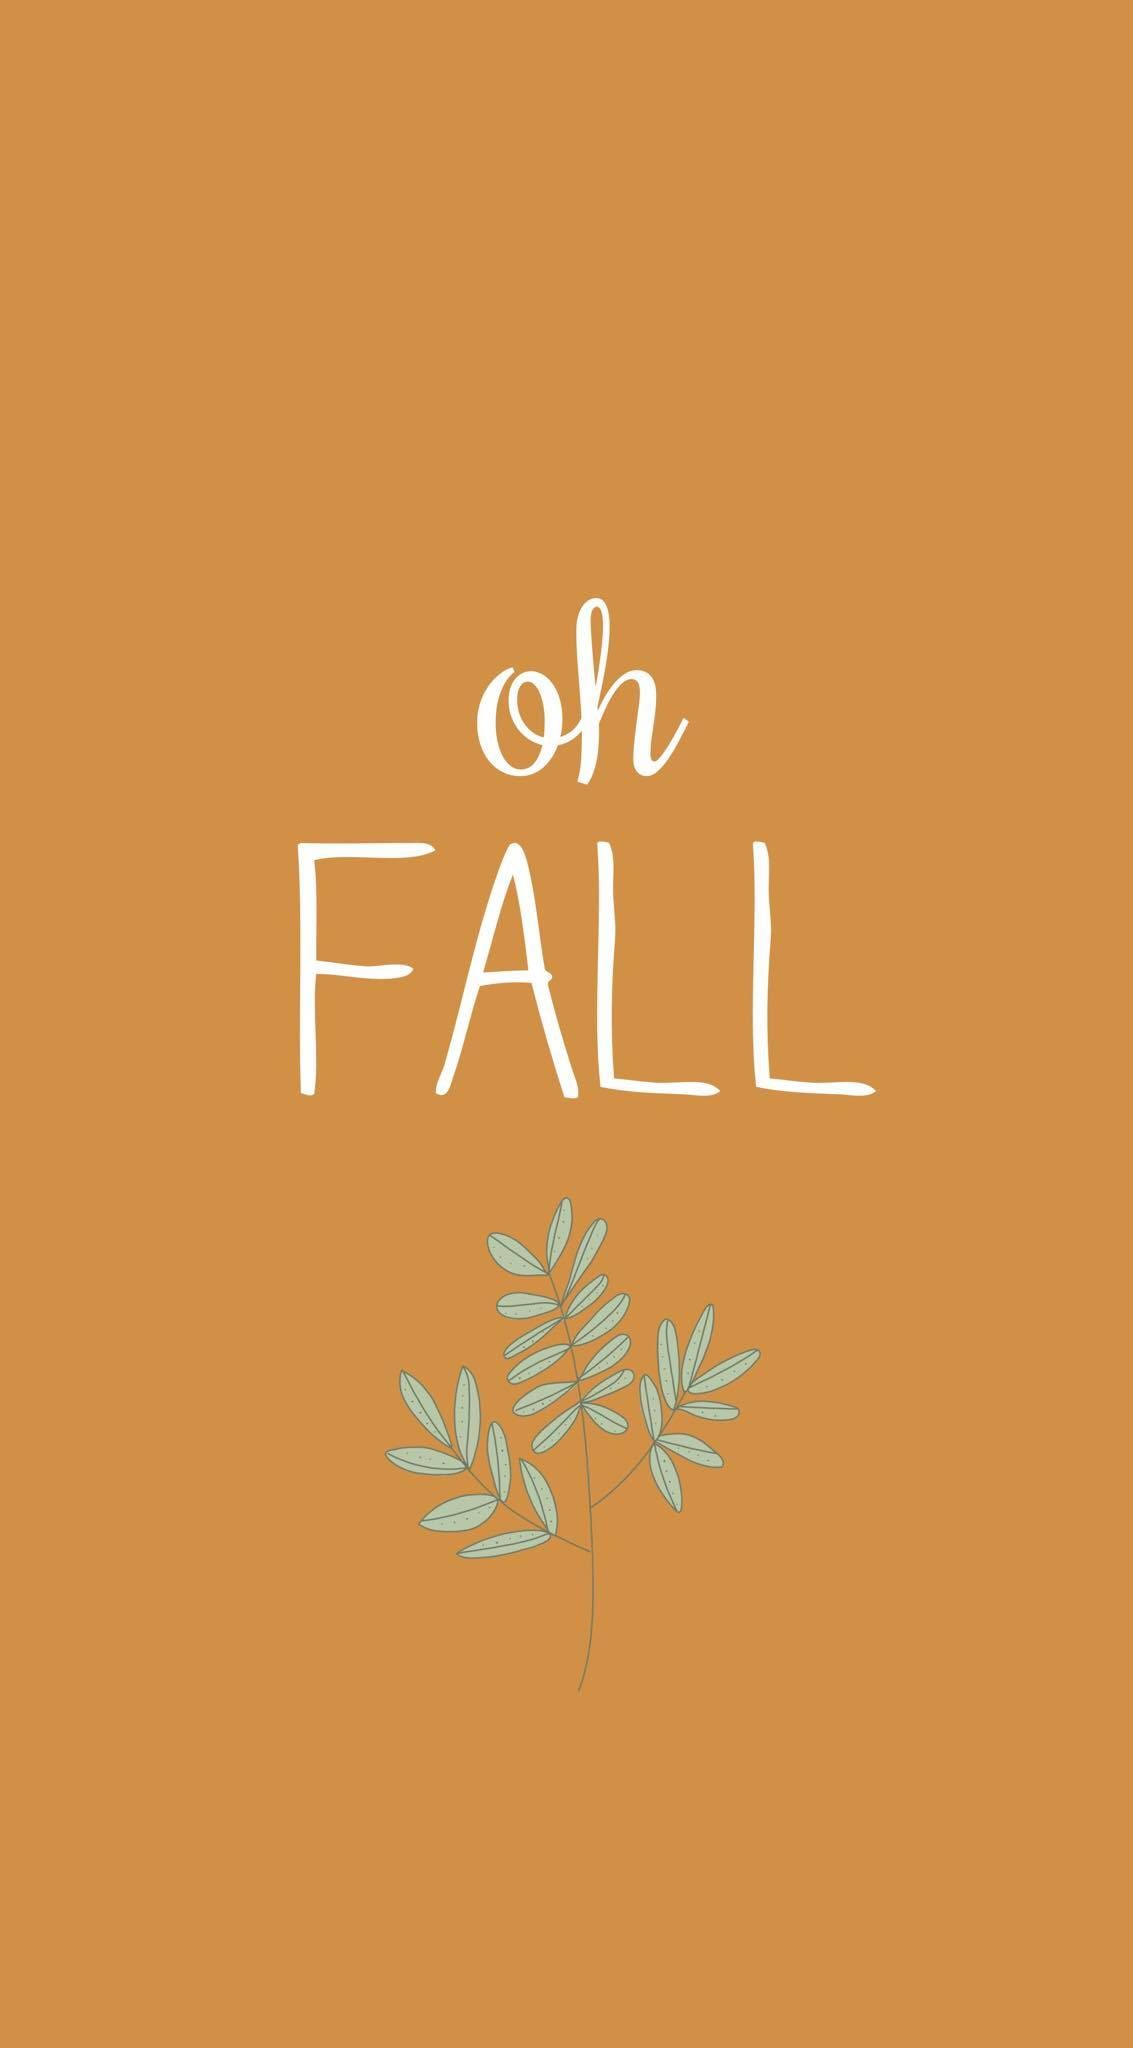 Wallpaper, Phone, Hintergrund, Hintergründe, Handy Hintergrund, Handy Wallpaper, iPhone Wallpaper, Android, fall, oh fall, herbst, leaves, blätter